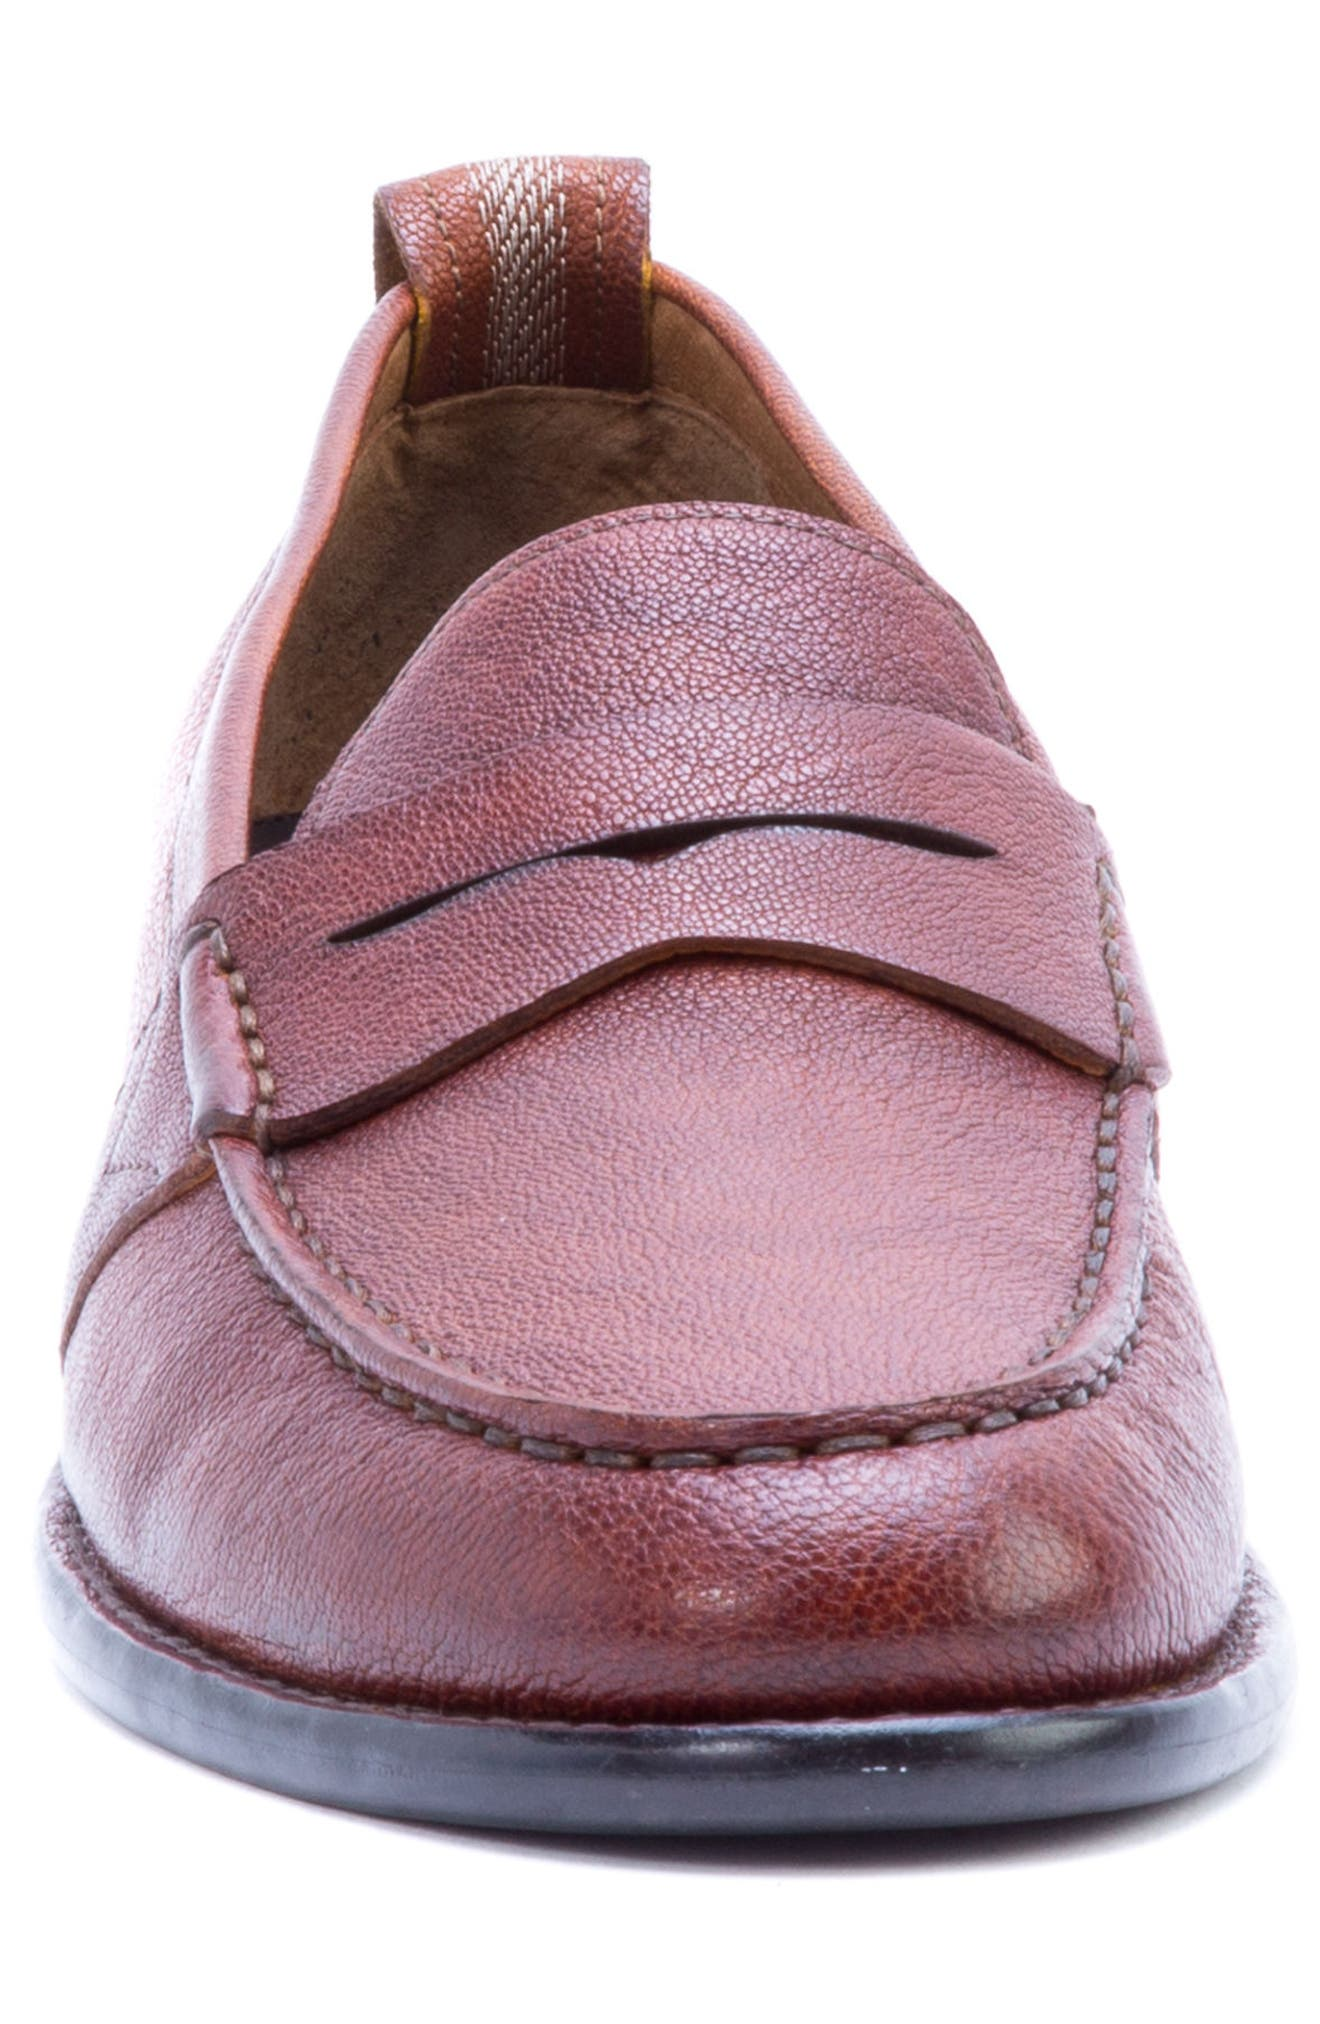 Torres Penny Loafer,                             Alternate thumbnail 4, color,                             Cognac Leather